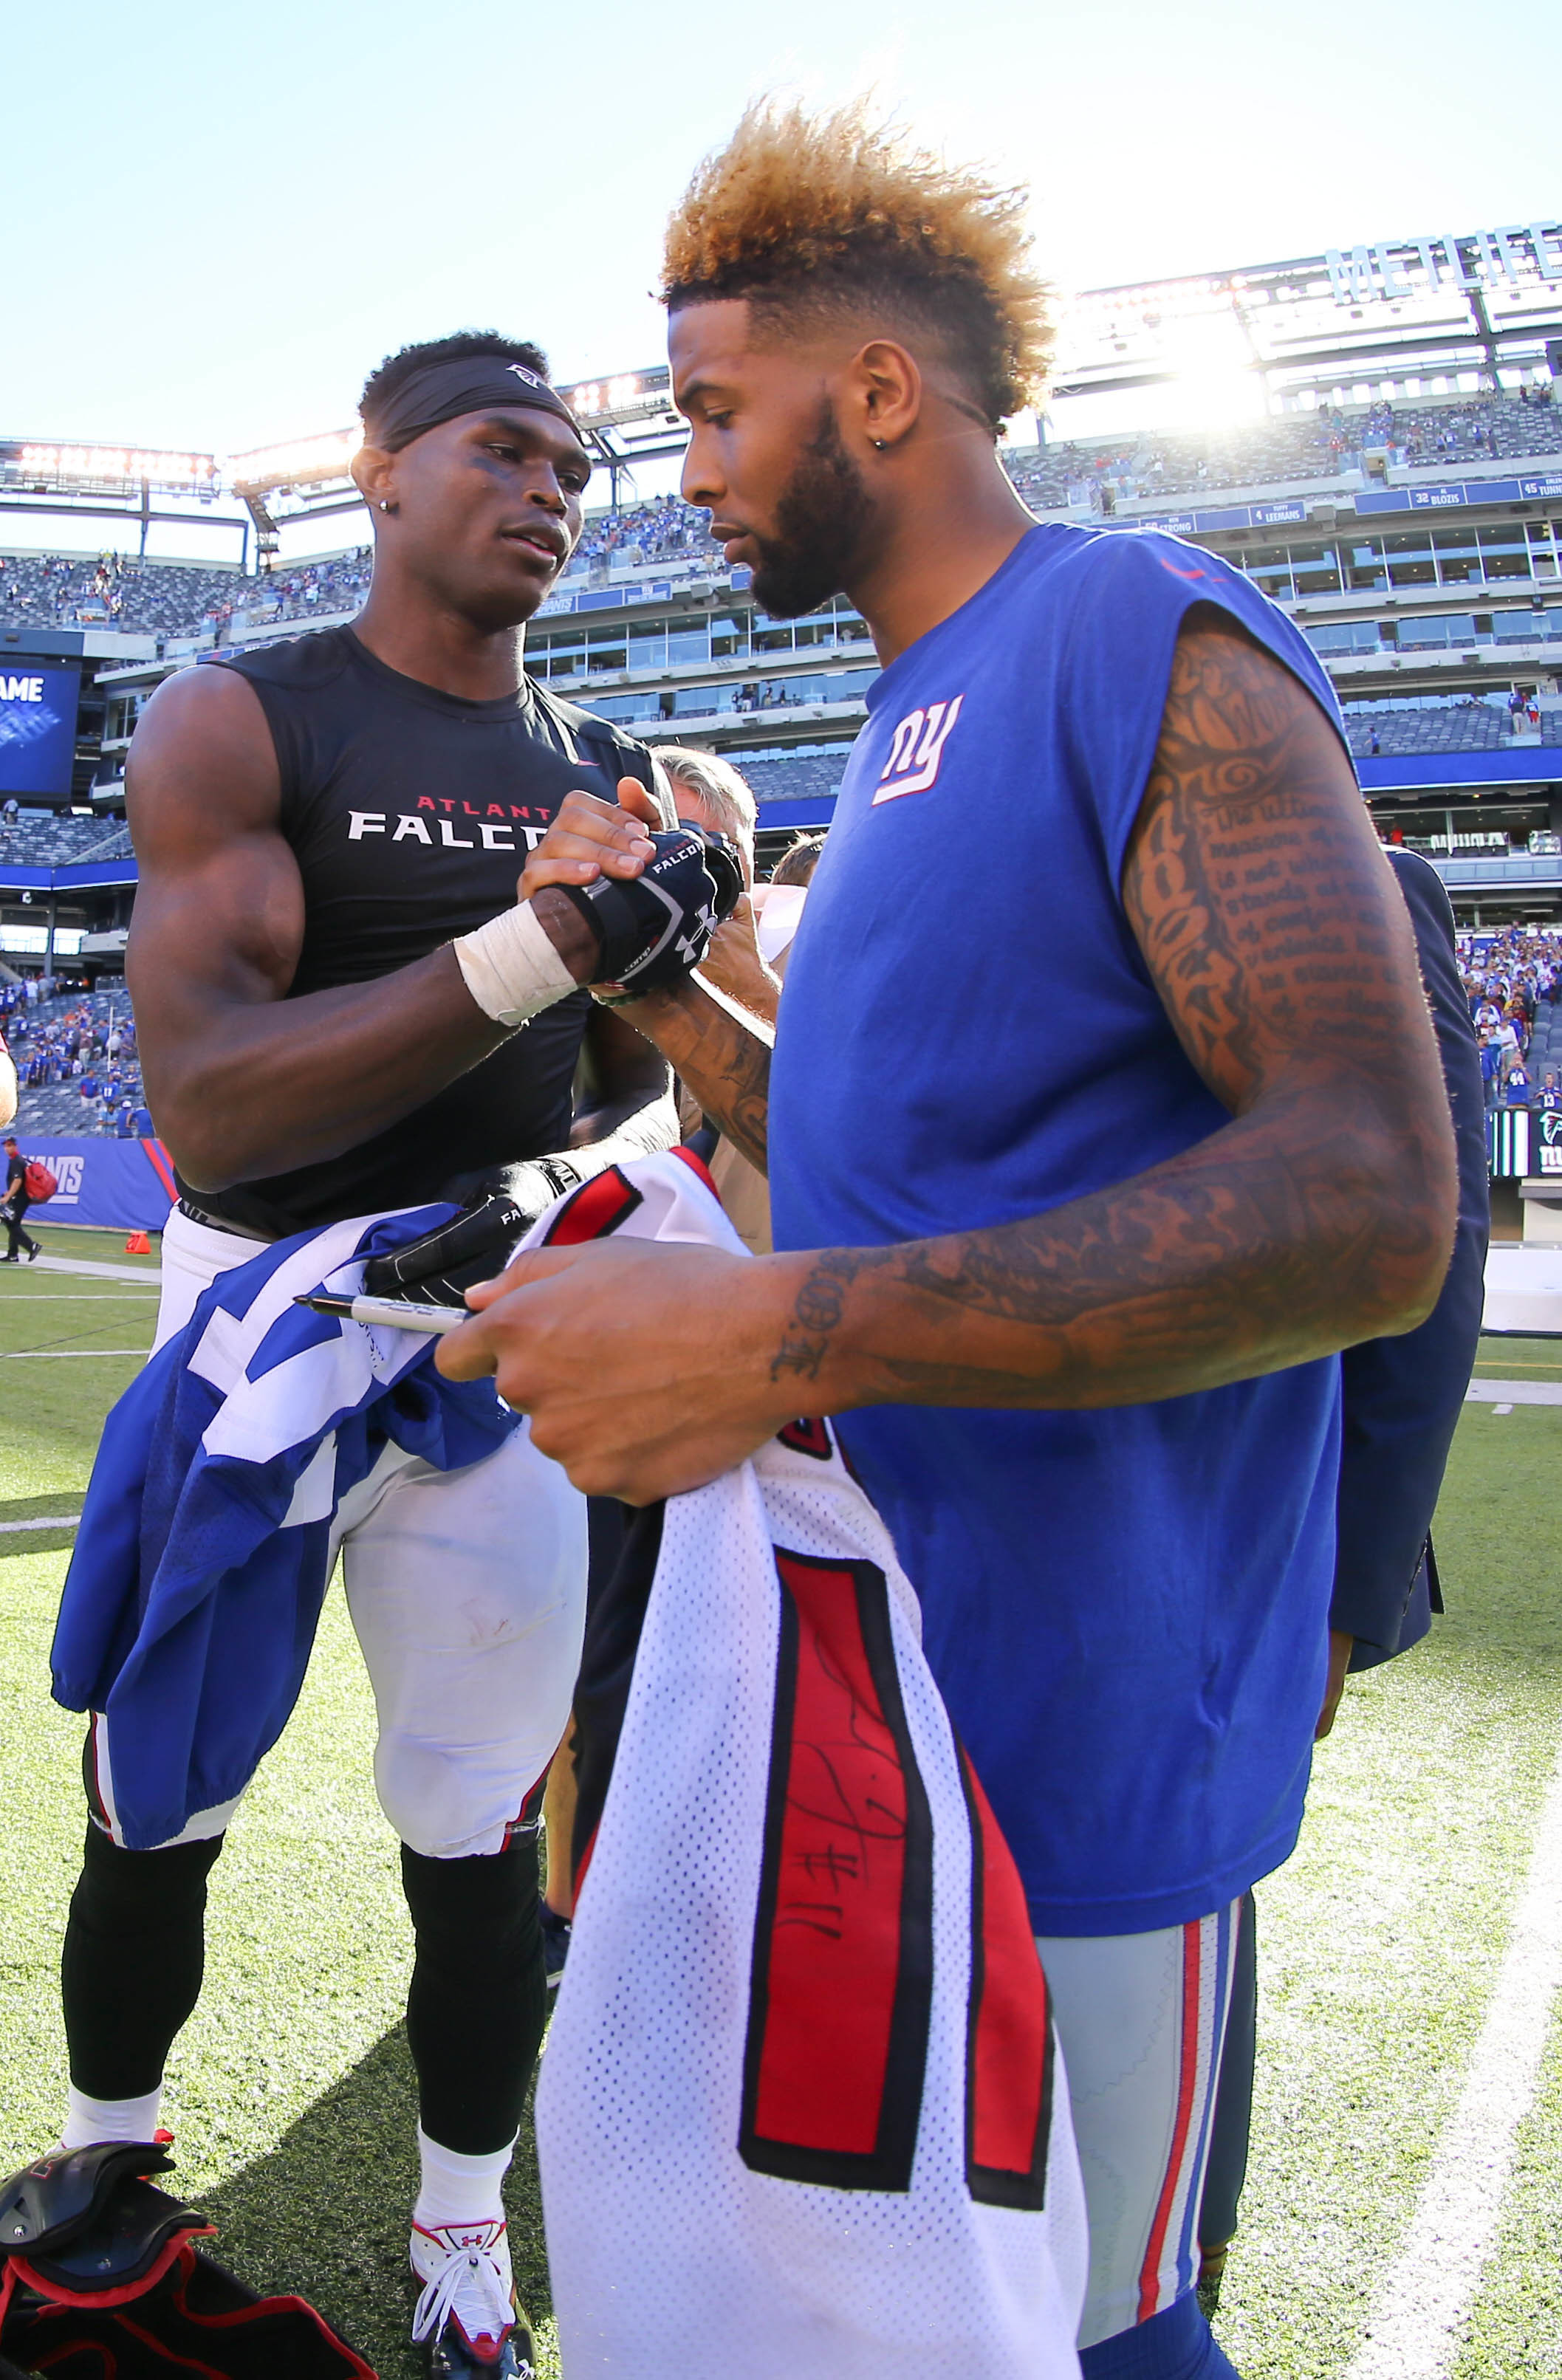 Atlanta Falcons wide receiver Julio Jones and New York Giants wide receiver Odell  Beckham Jr. exchange jerseys after their game at MetLife Stadium.